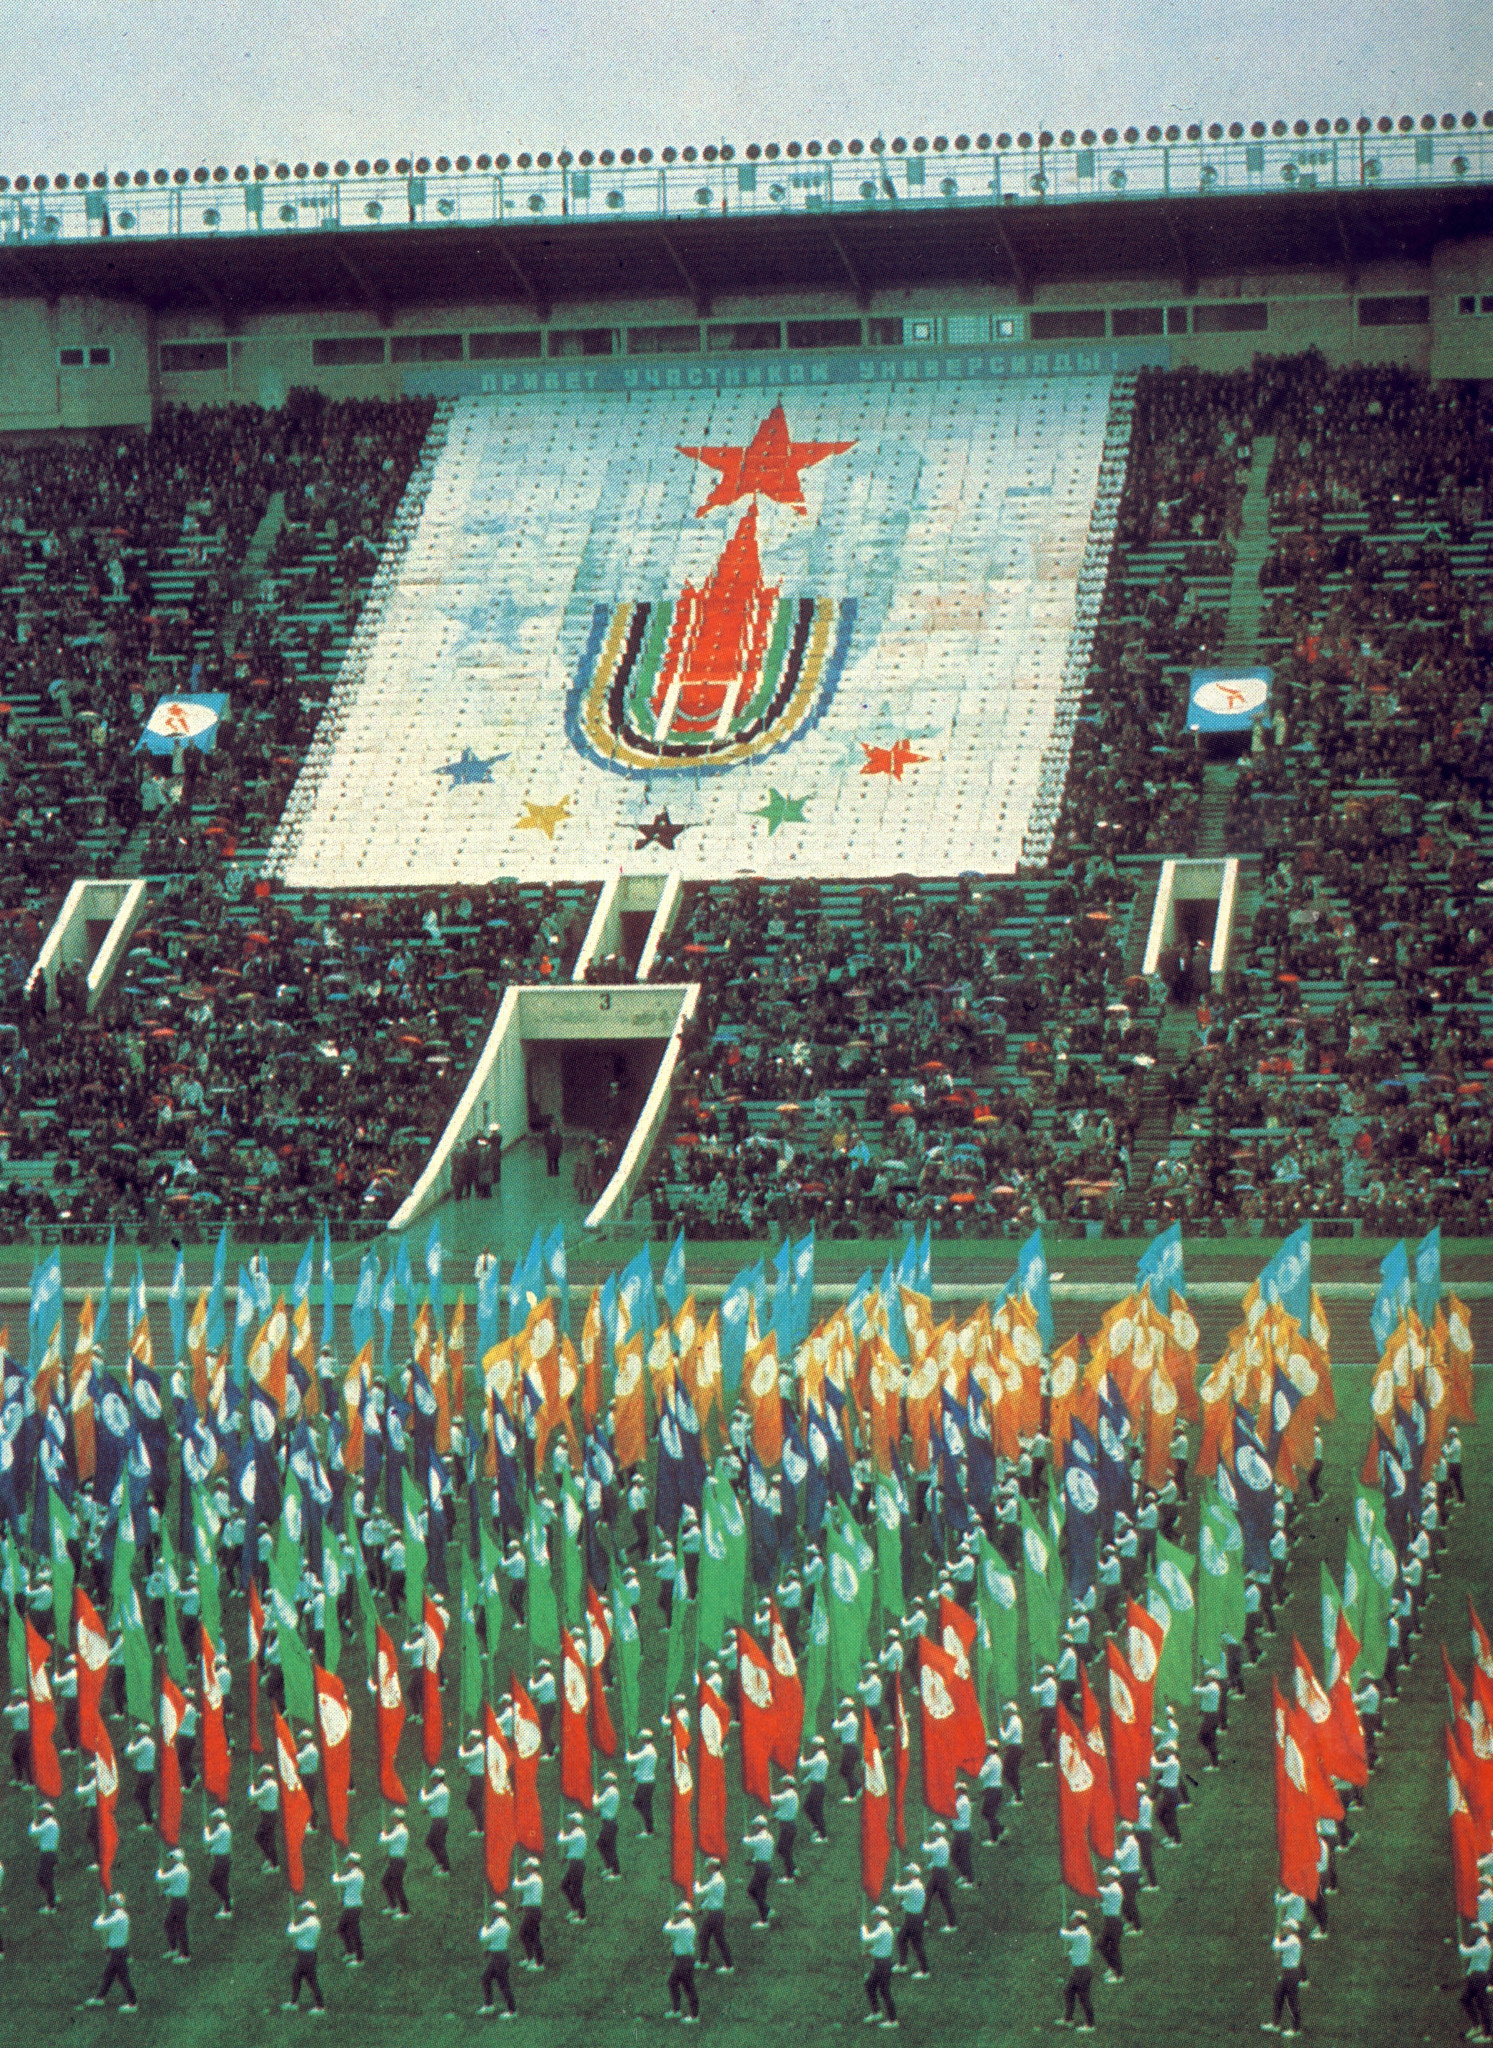 More than 70 countries took part in the 1973 Universiade in Moscow, an event the Soviet Union used to showcase its bid for the 1980 Olympic Games, which they were officially awarded by the IOC the following year ©Progress Publishers Moscow